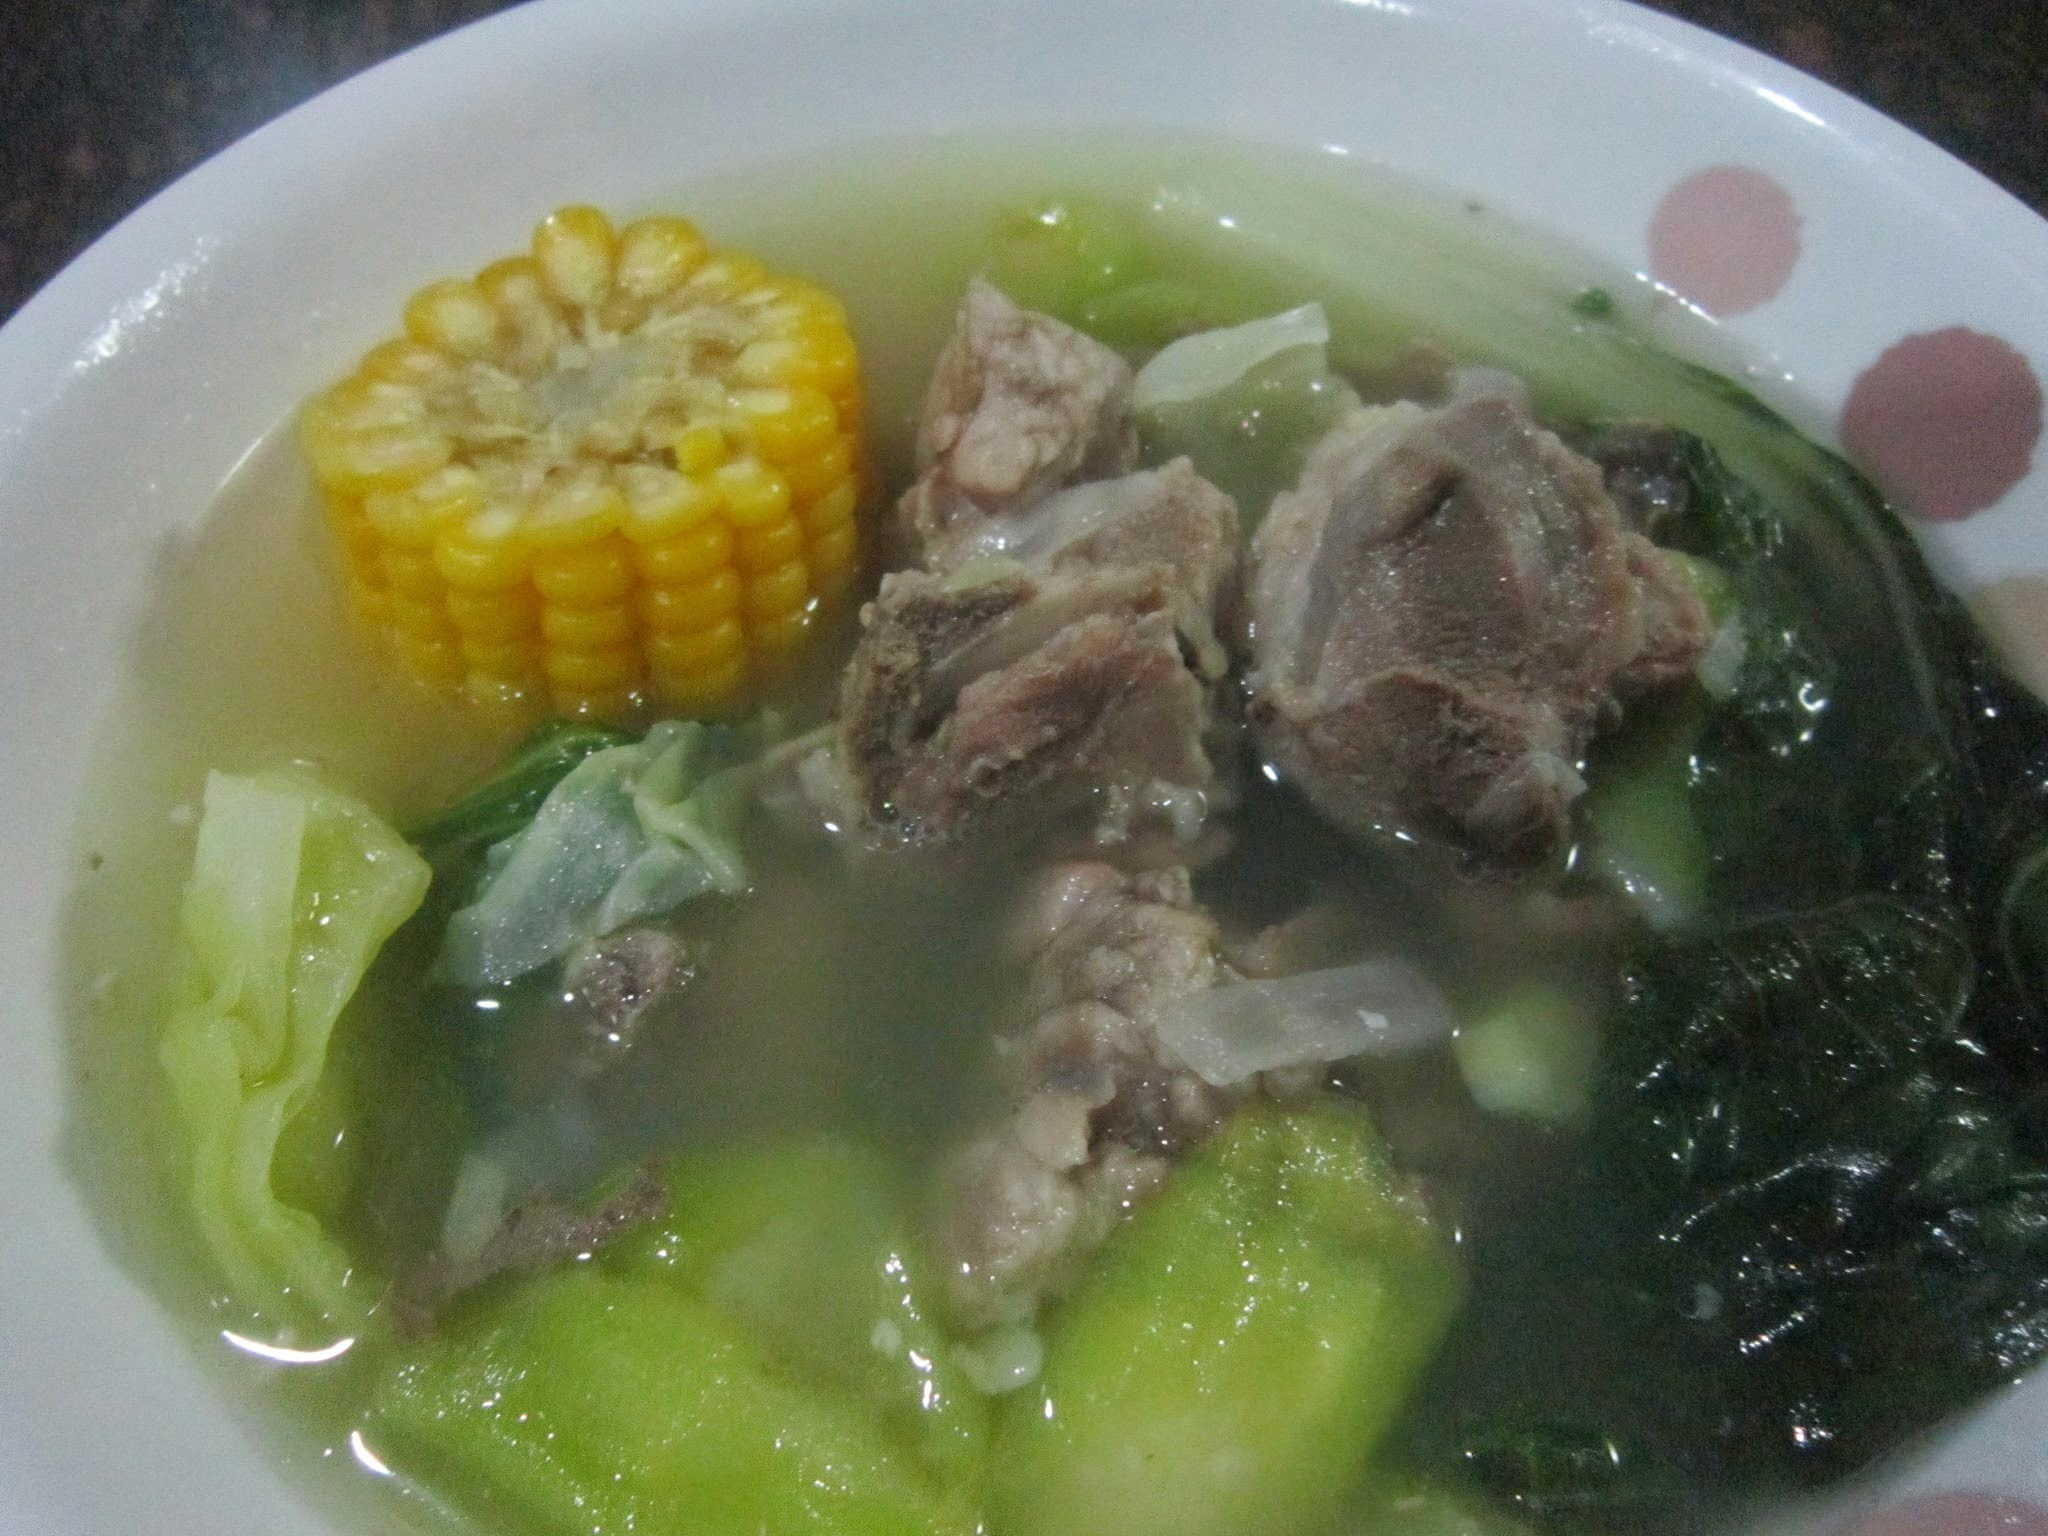 NILAGANG BUTO-BUTO na may MAIS at PATOLA